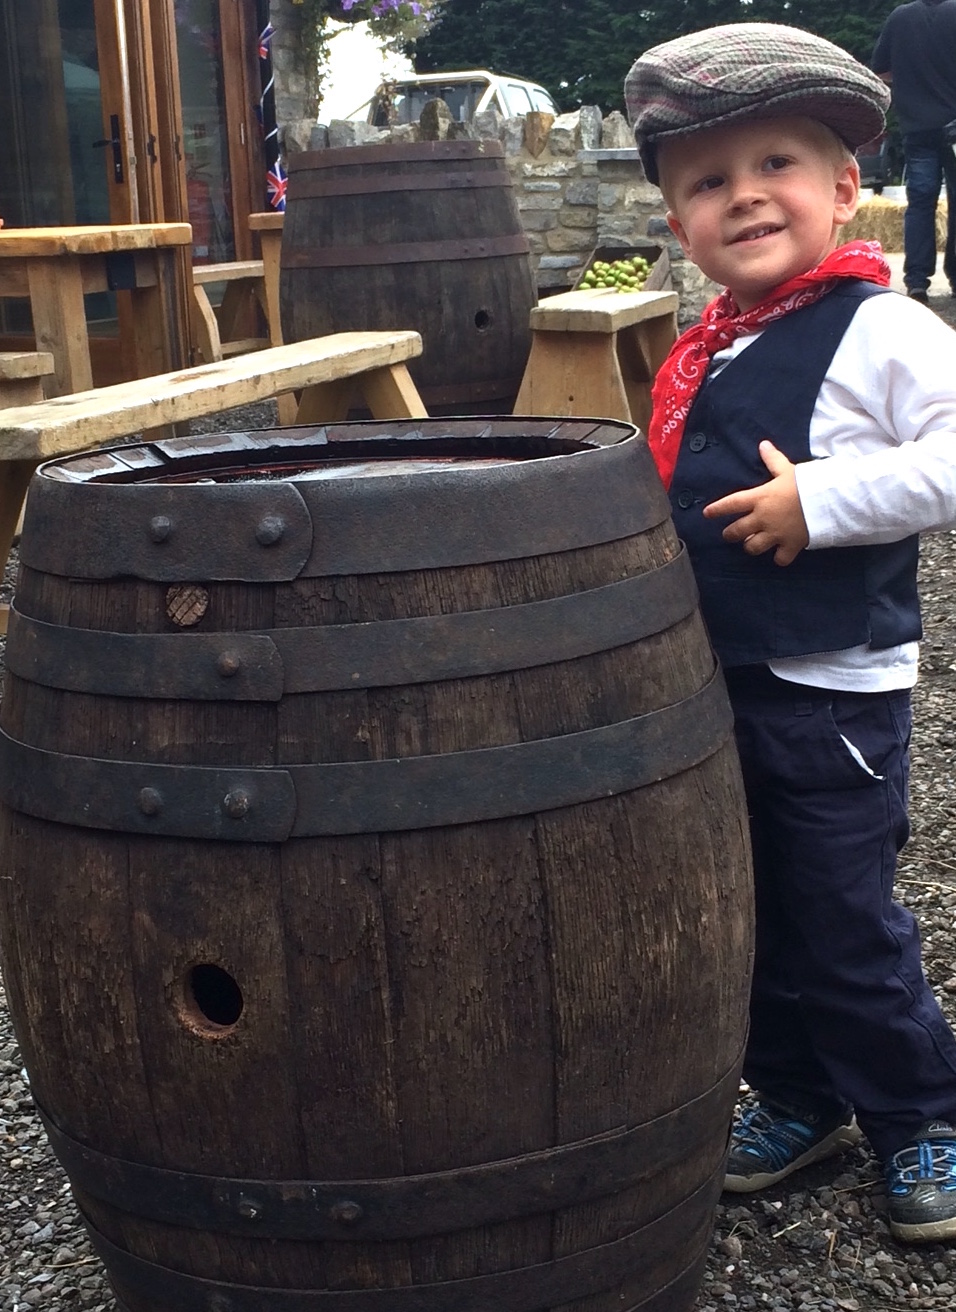 Boy & barrel 1